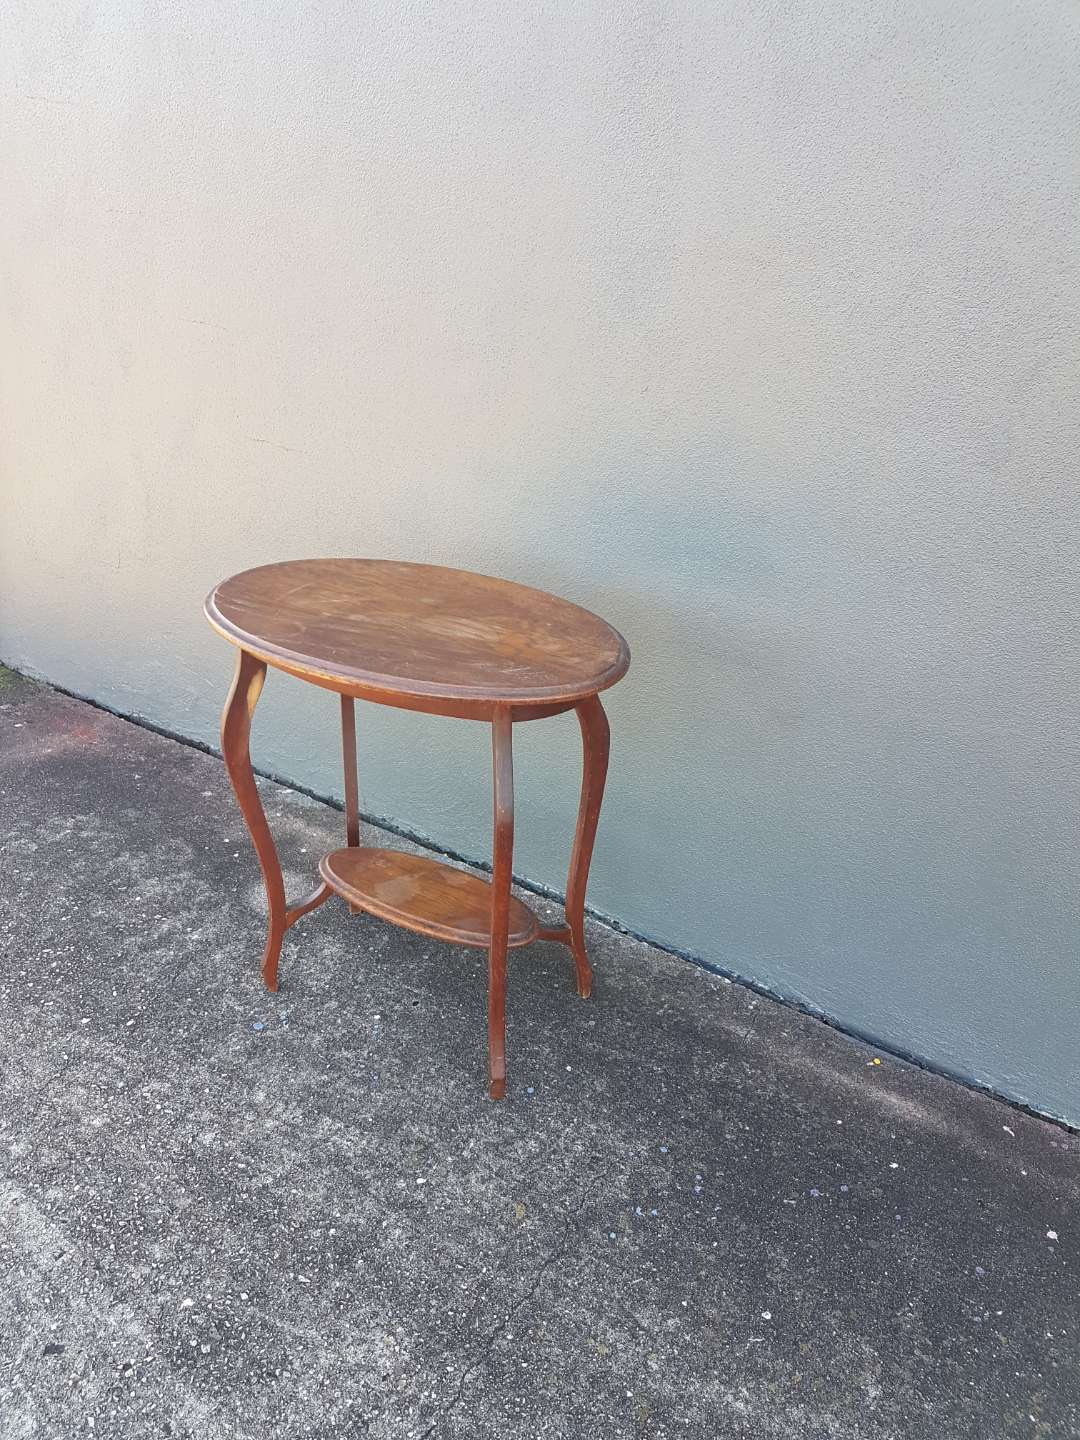 Oak Occasional table in need of some rejuevenation